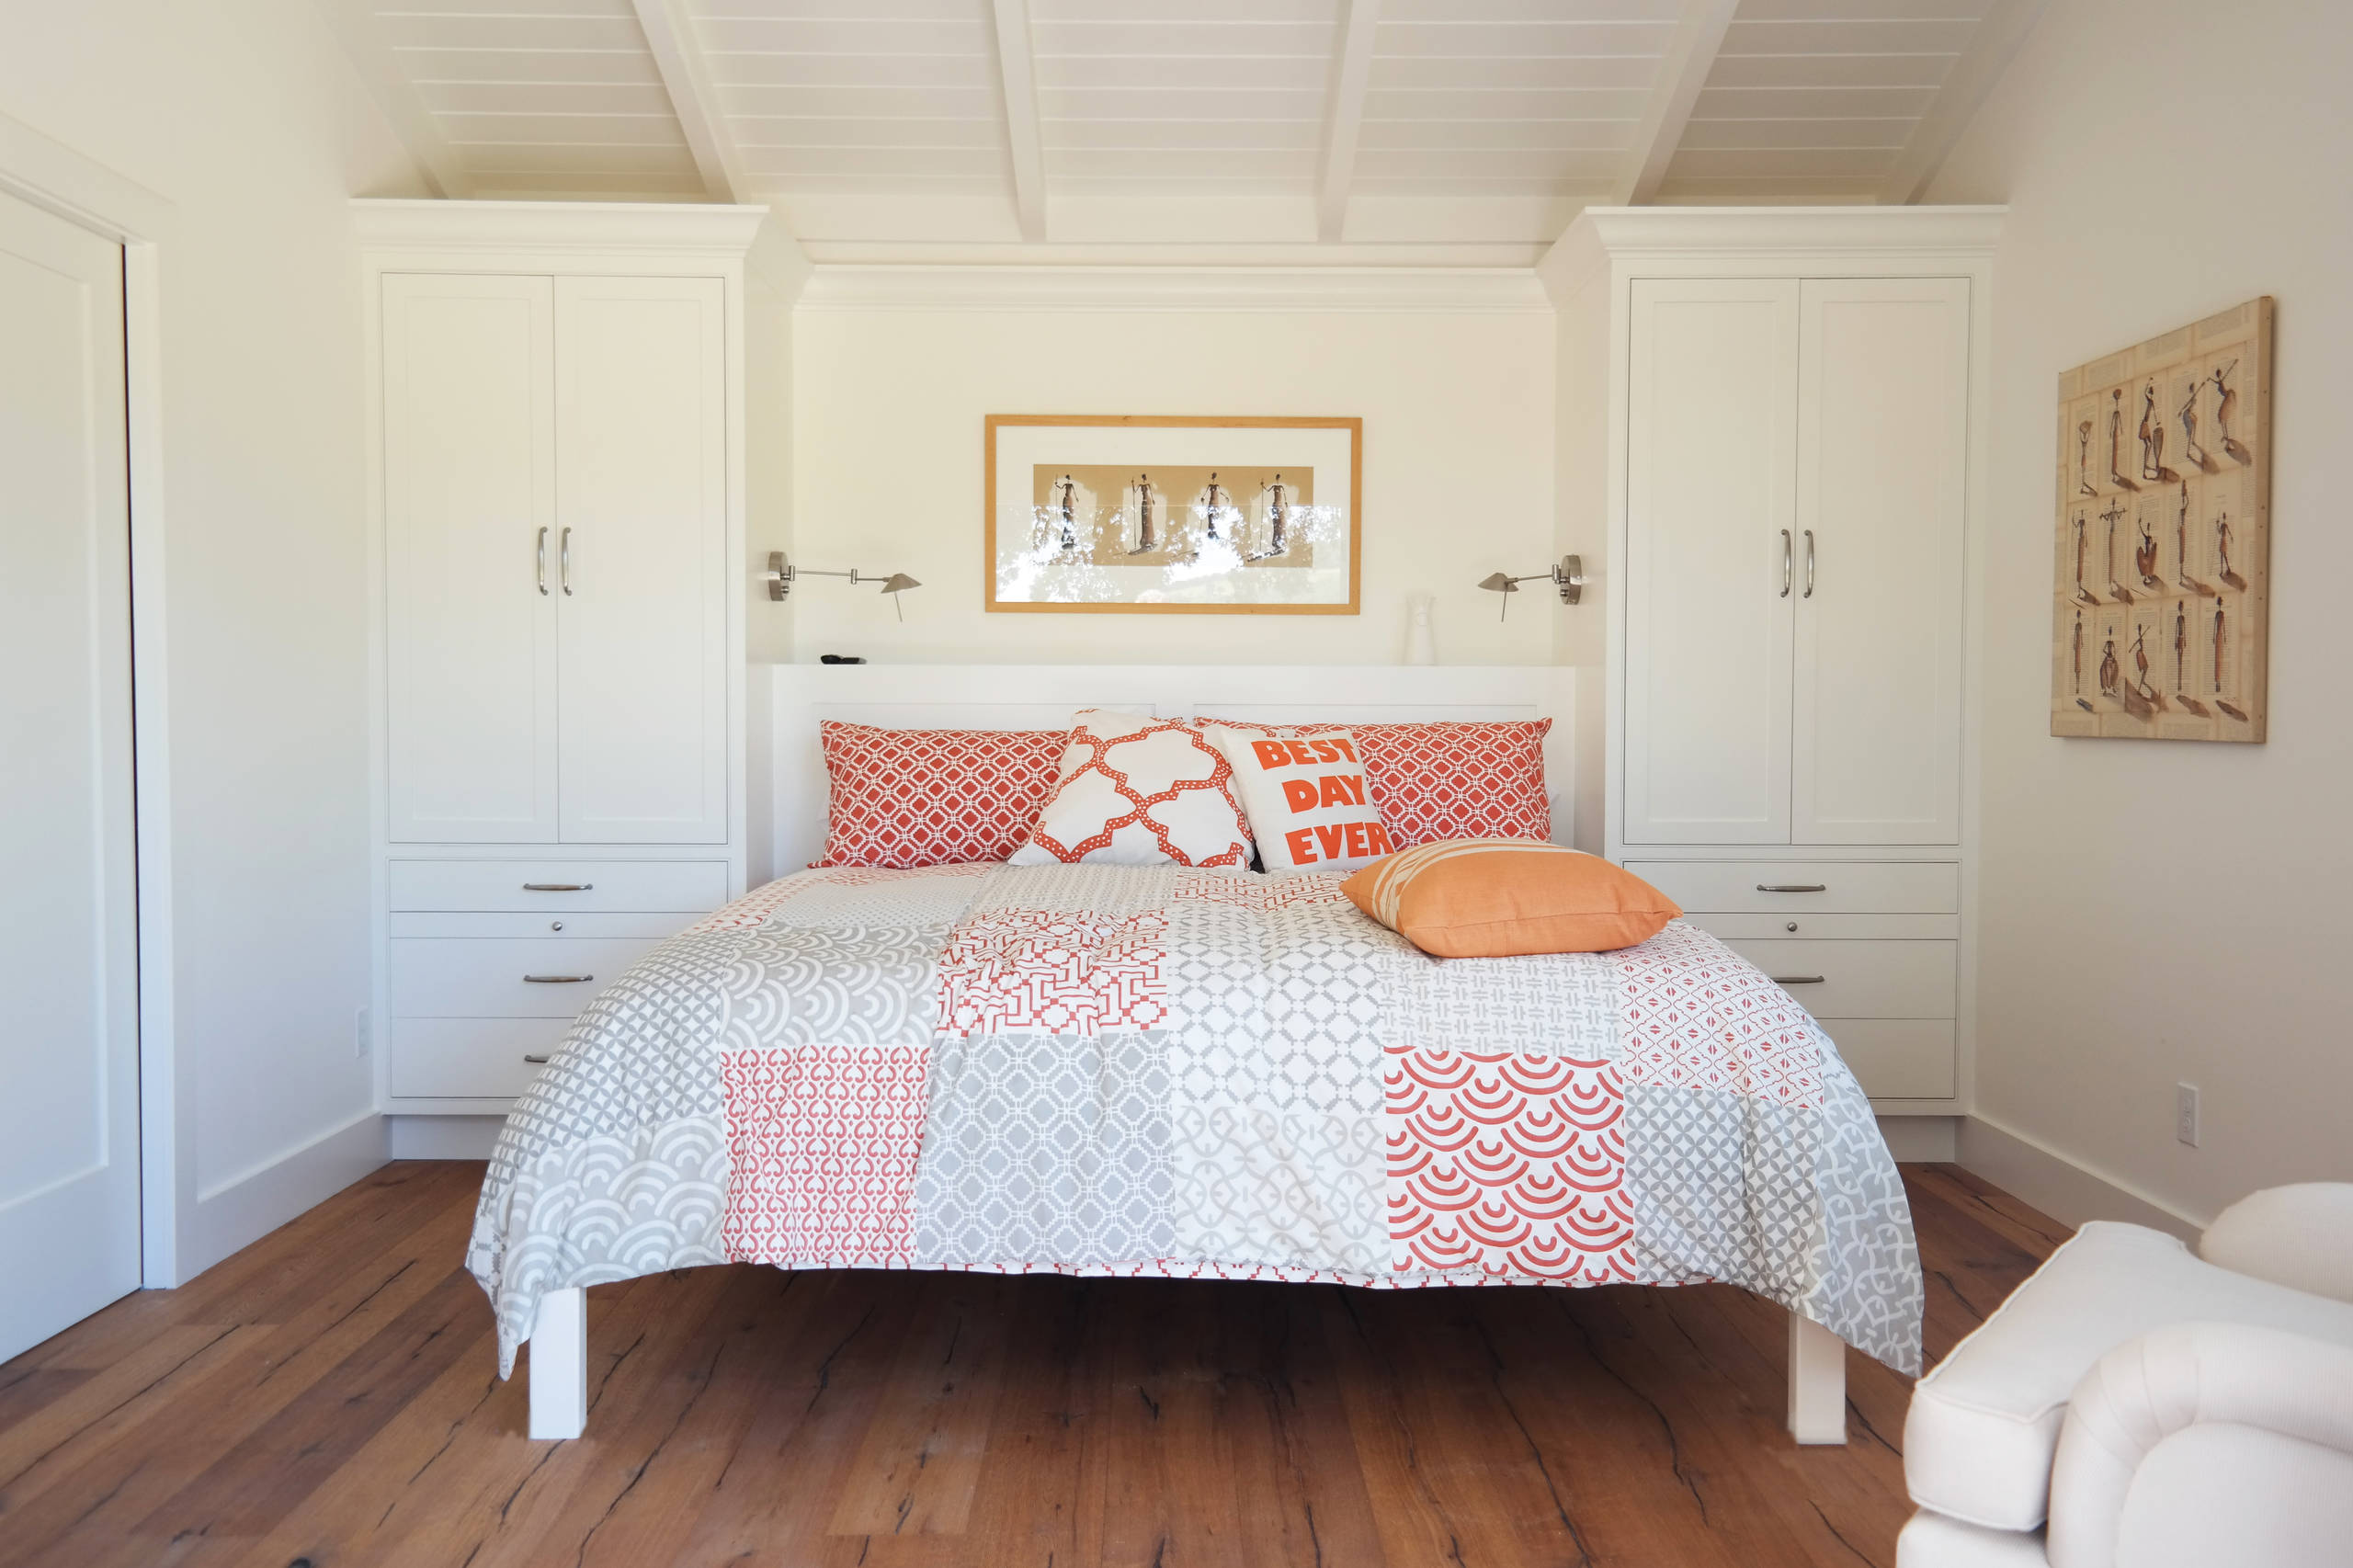 75 Beautiful Small Farmhouse Bedroom Pictures Ideas February 2021 Houzz